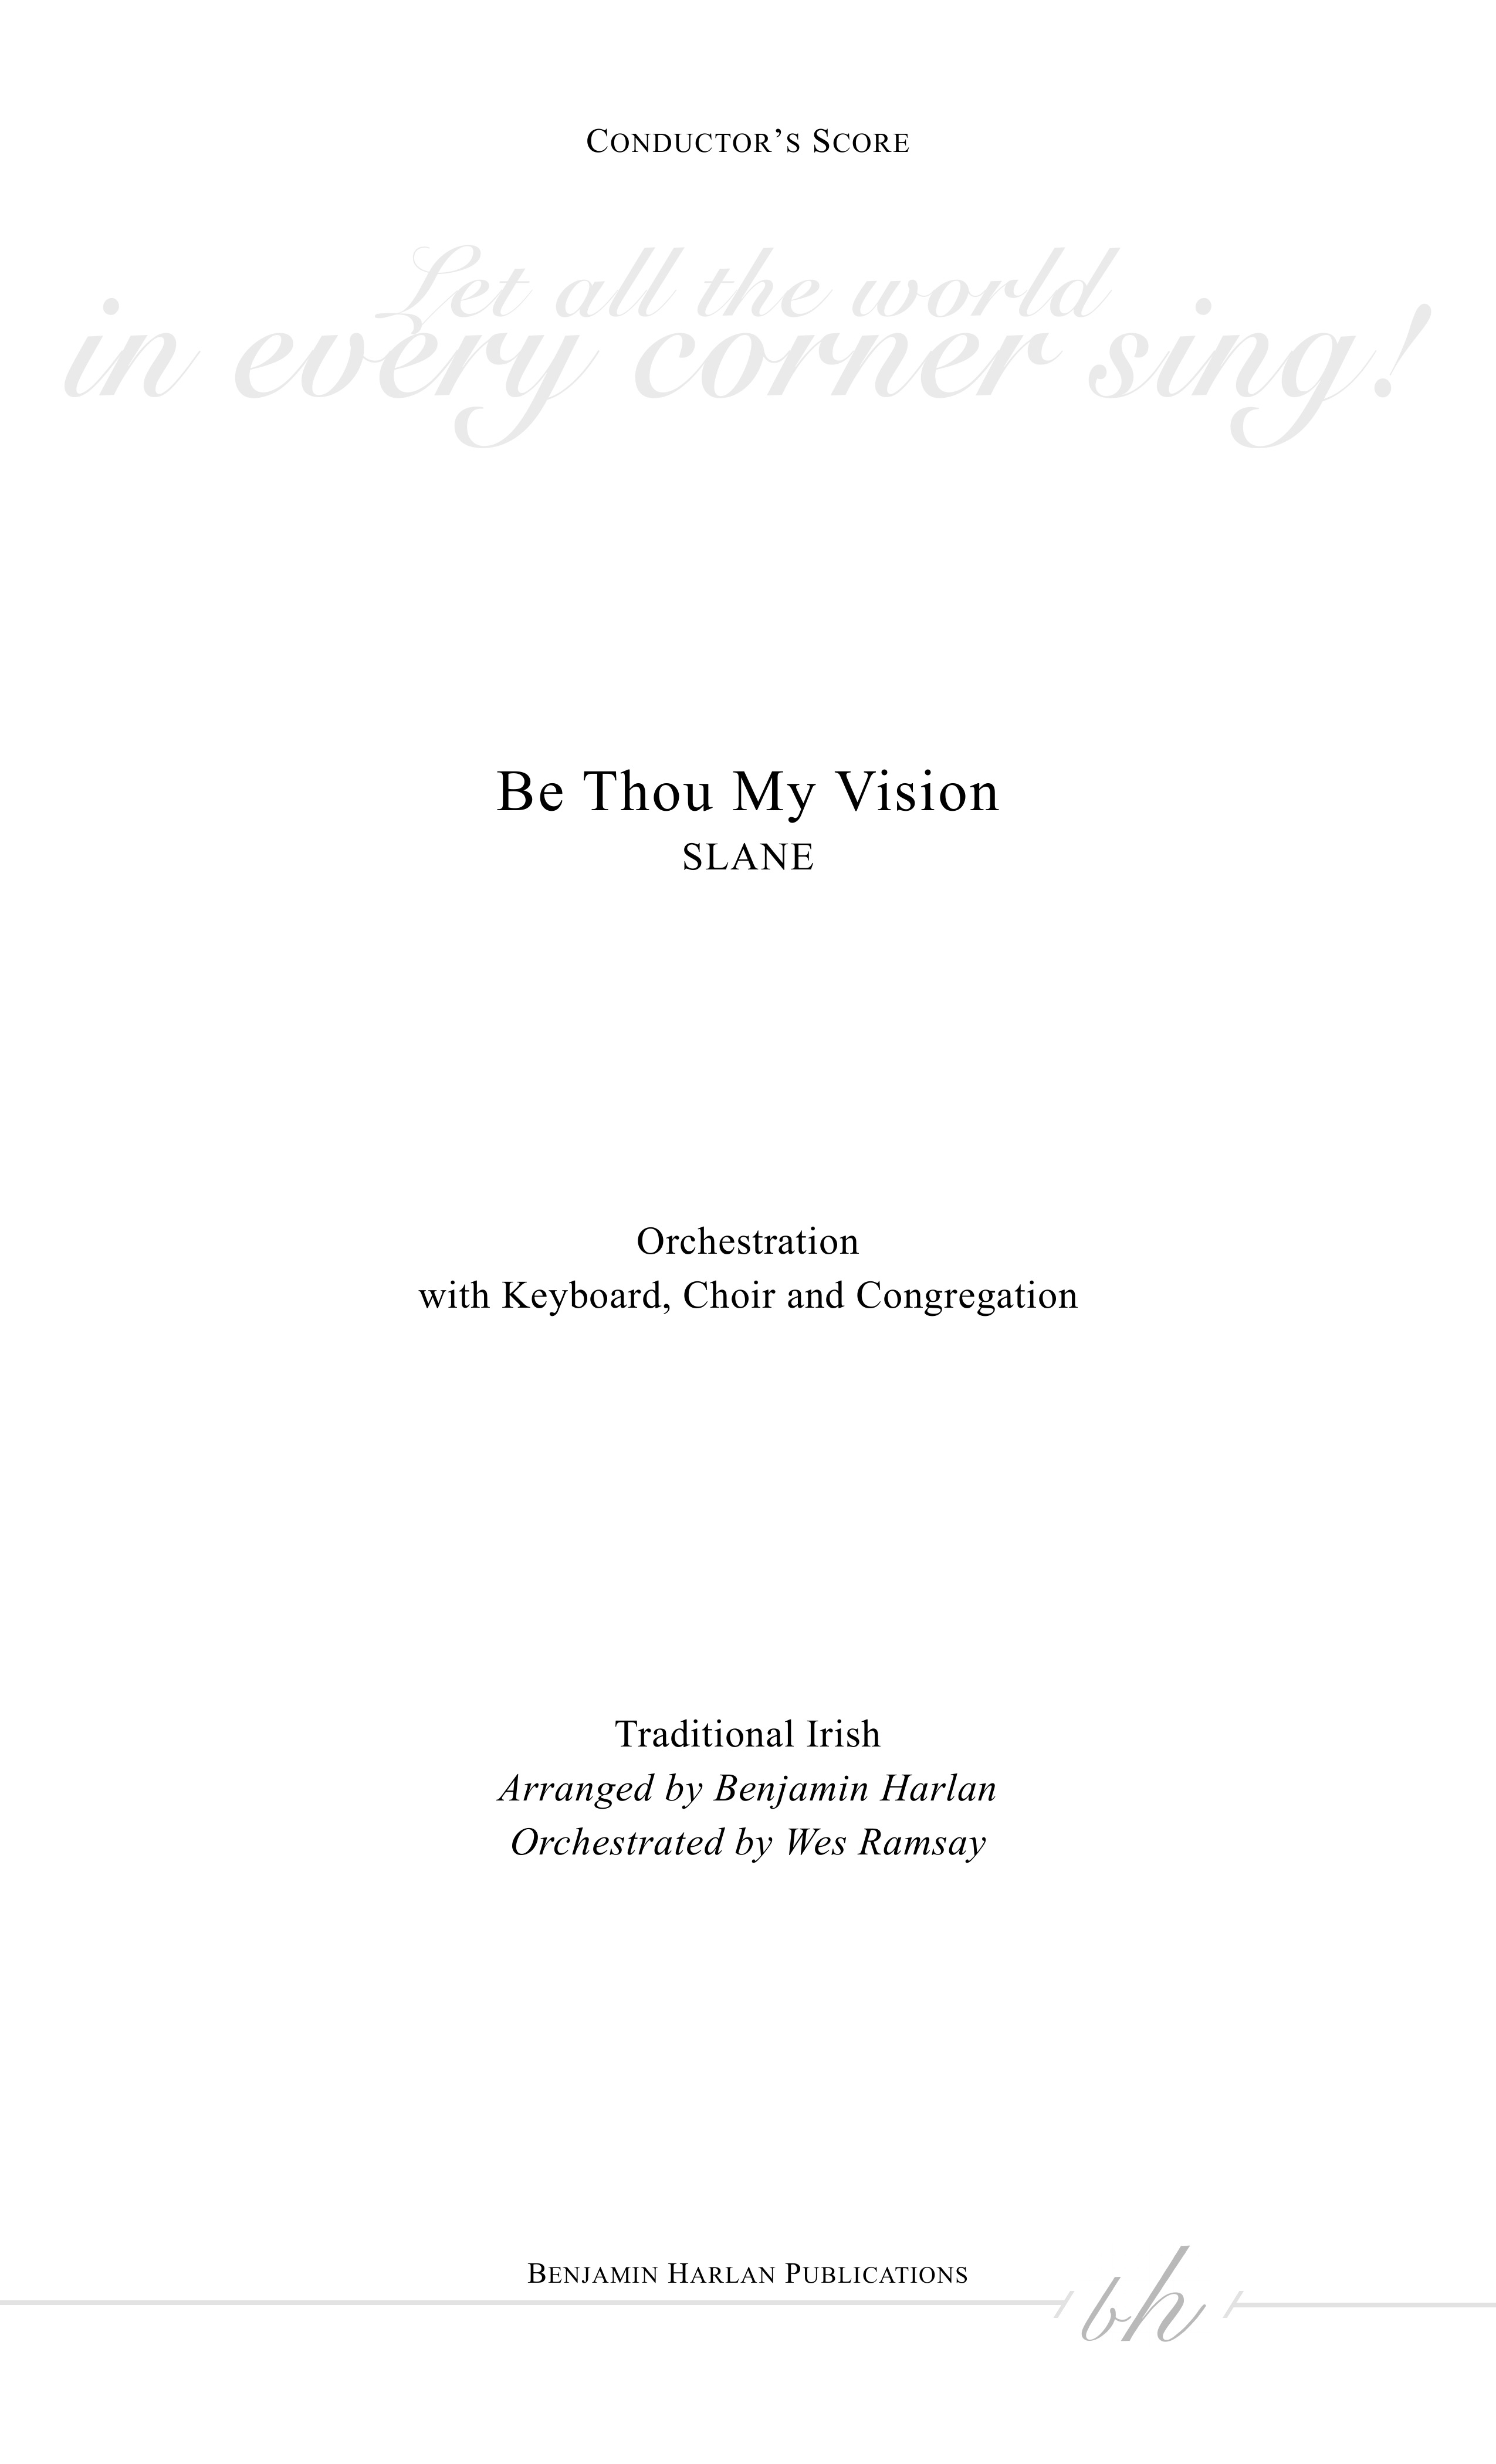 Be Thou My Vision ORCH